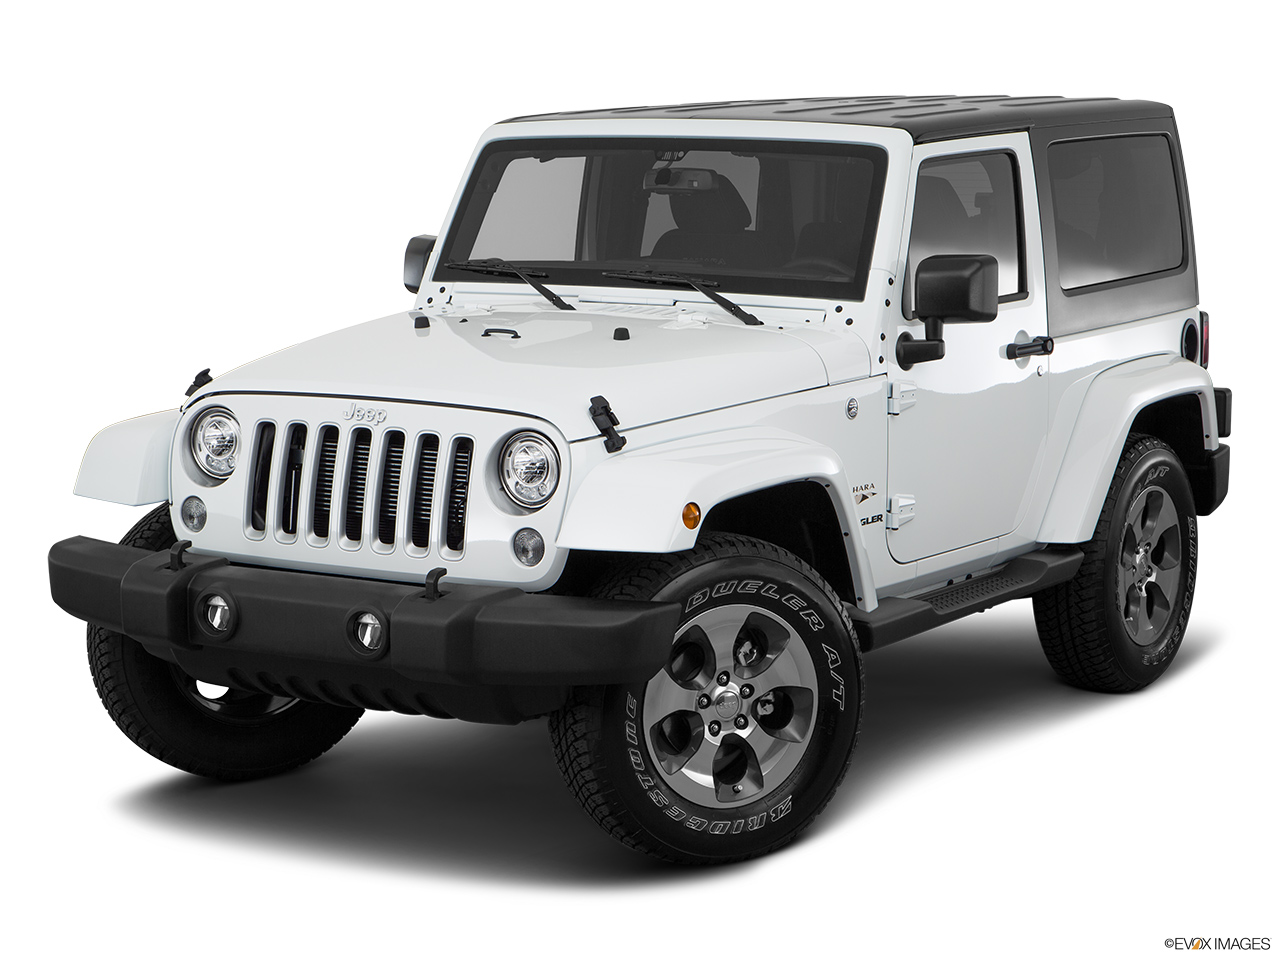 2018 jeep wrangler prices in uae, gulf specs & reviews for dubai